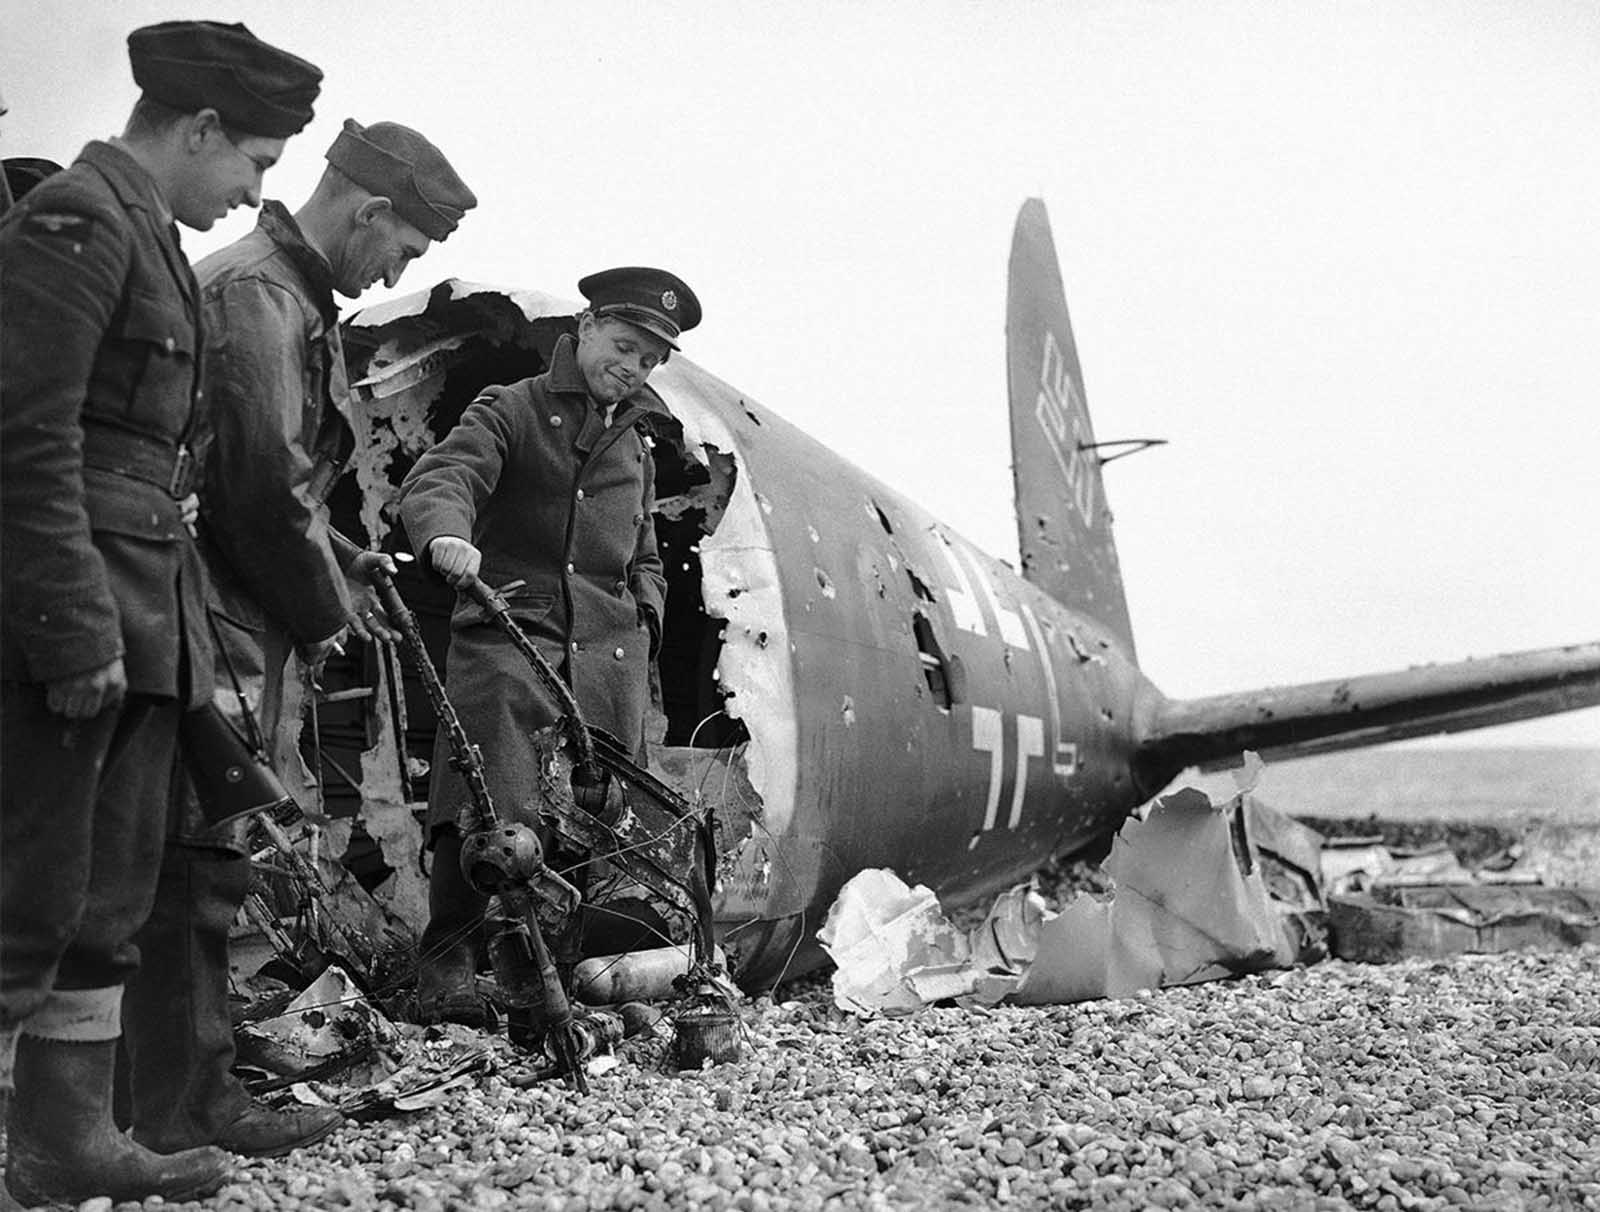 All that remains of a German bomber brought down on the English south-east coast, on July 13, 1940. The aircraft is riddled with bullet holes and its machine guns were twisted out of action.